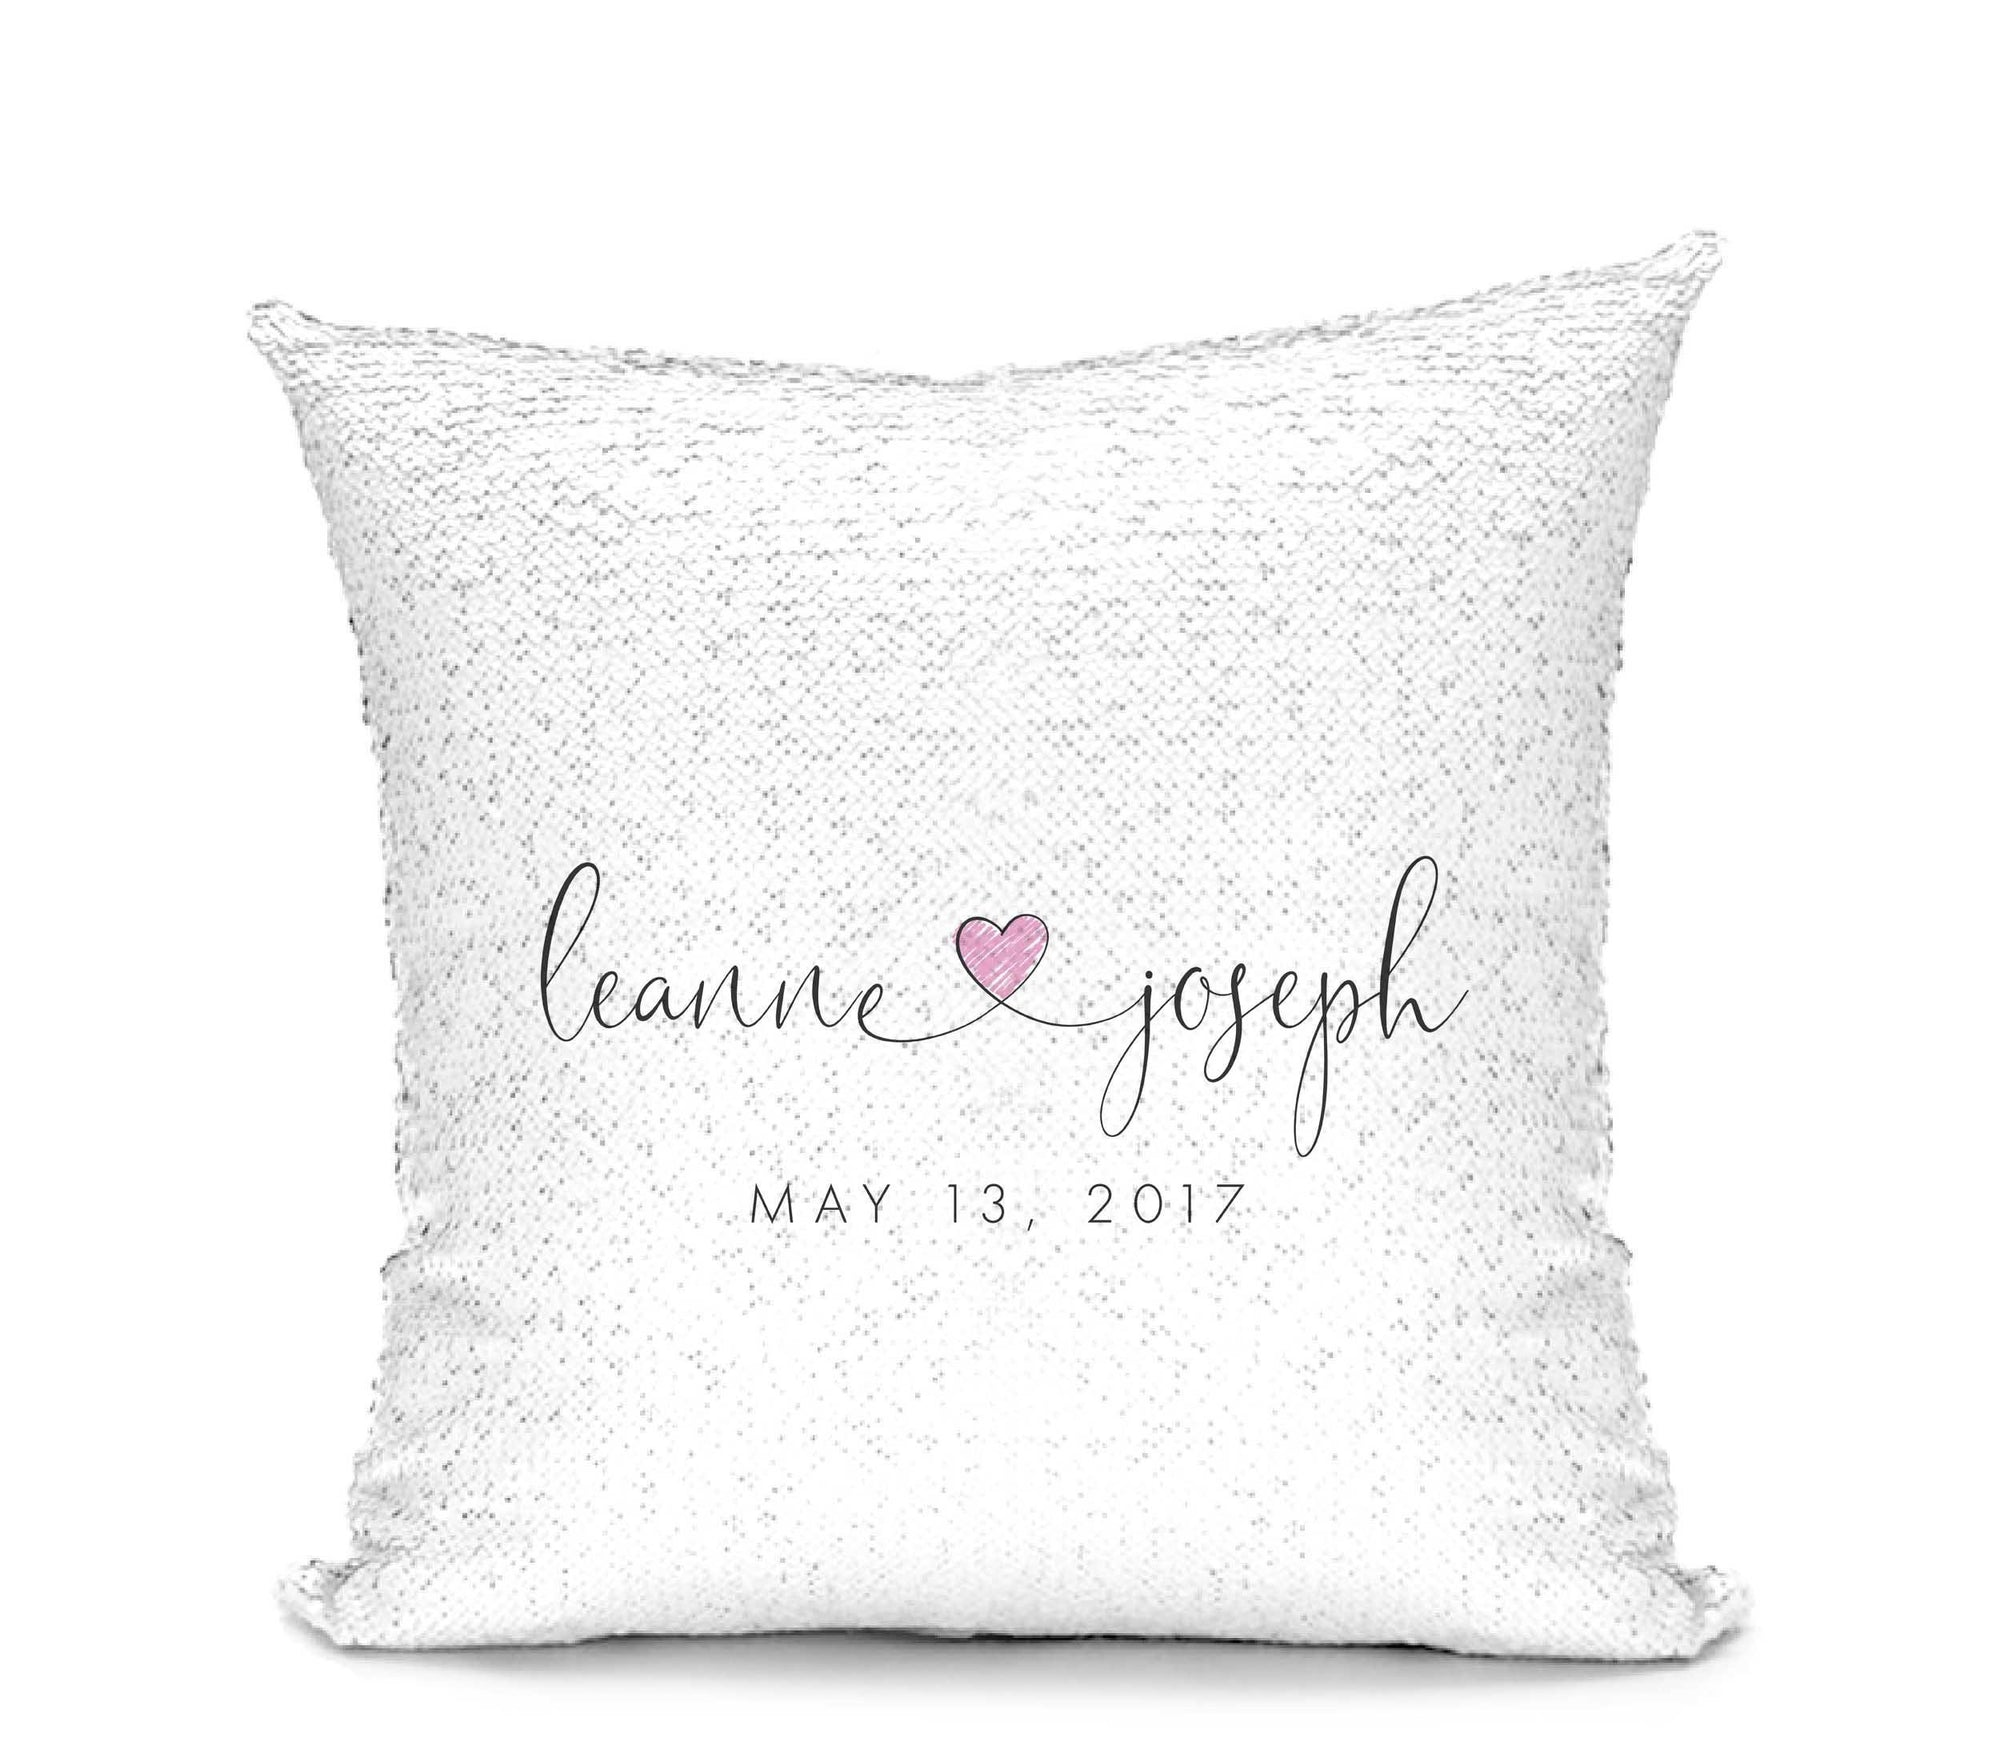 Leanne & Co. Pillow Newlywed Mermaid Sequin Pillow